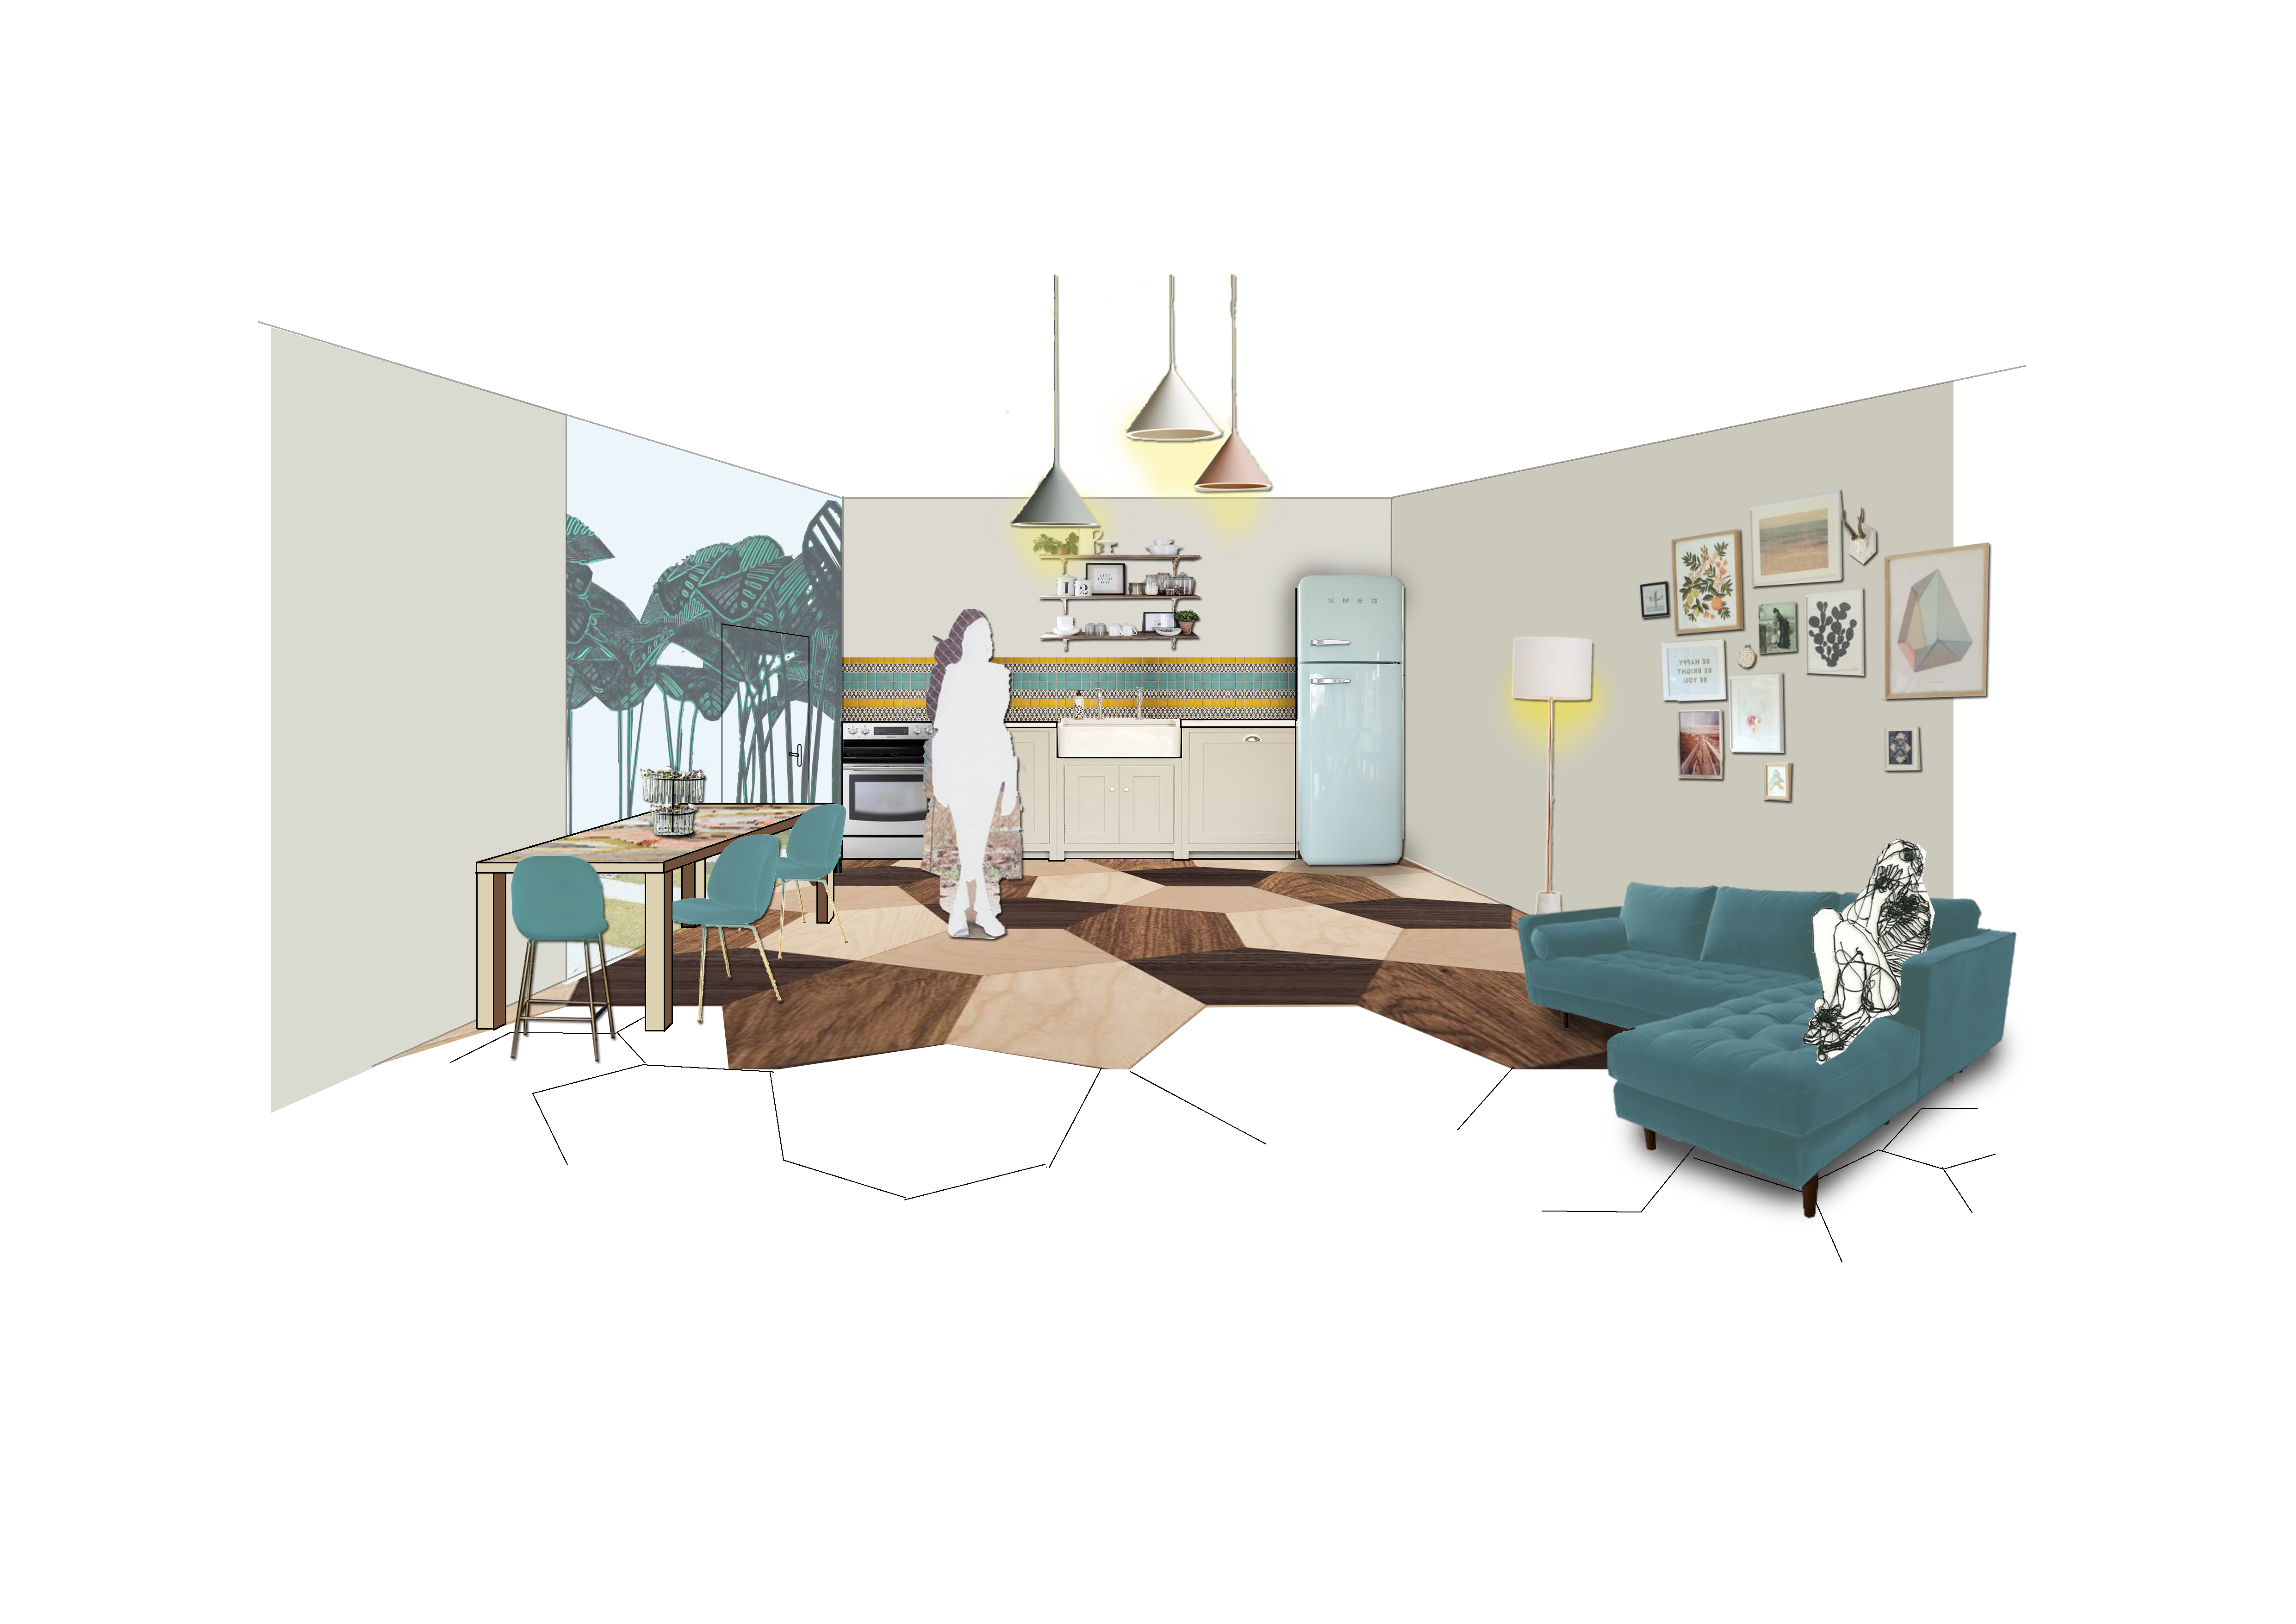 Honours Project / Apartment Visual Image